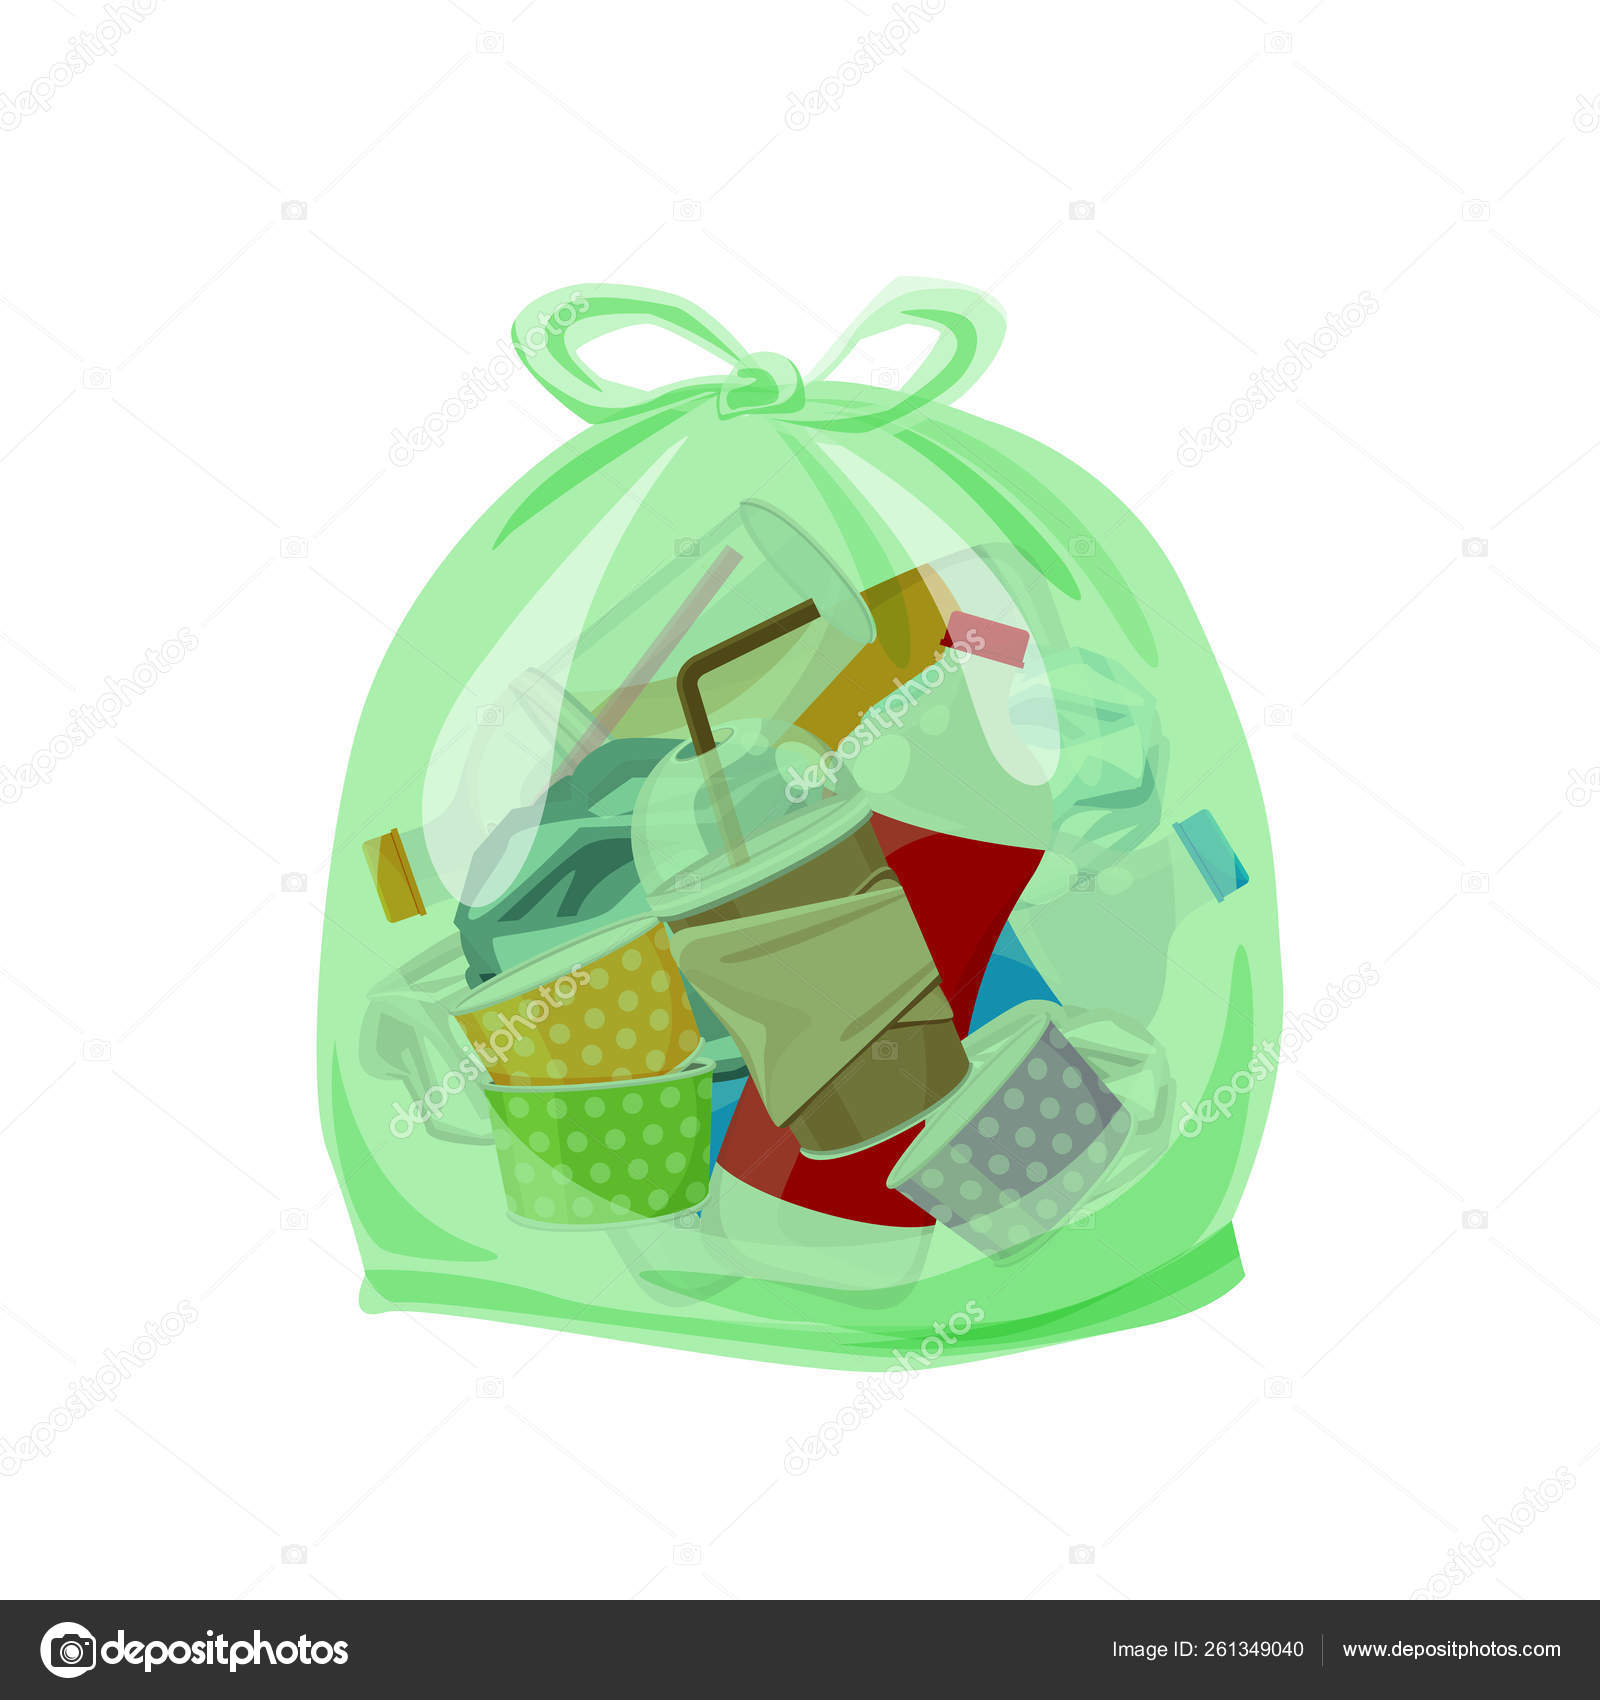 Plastic waste packed in the transparent plastic bags for